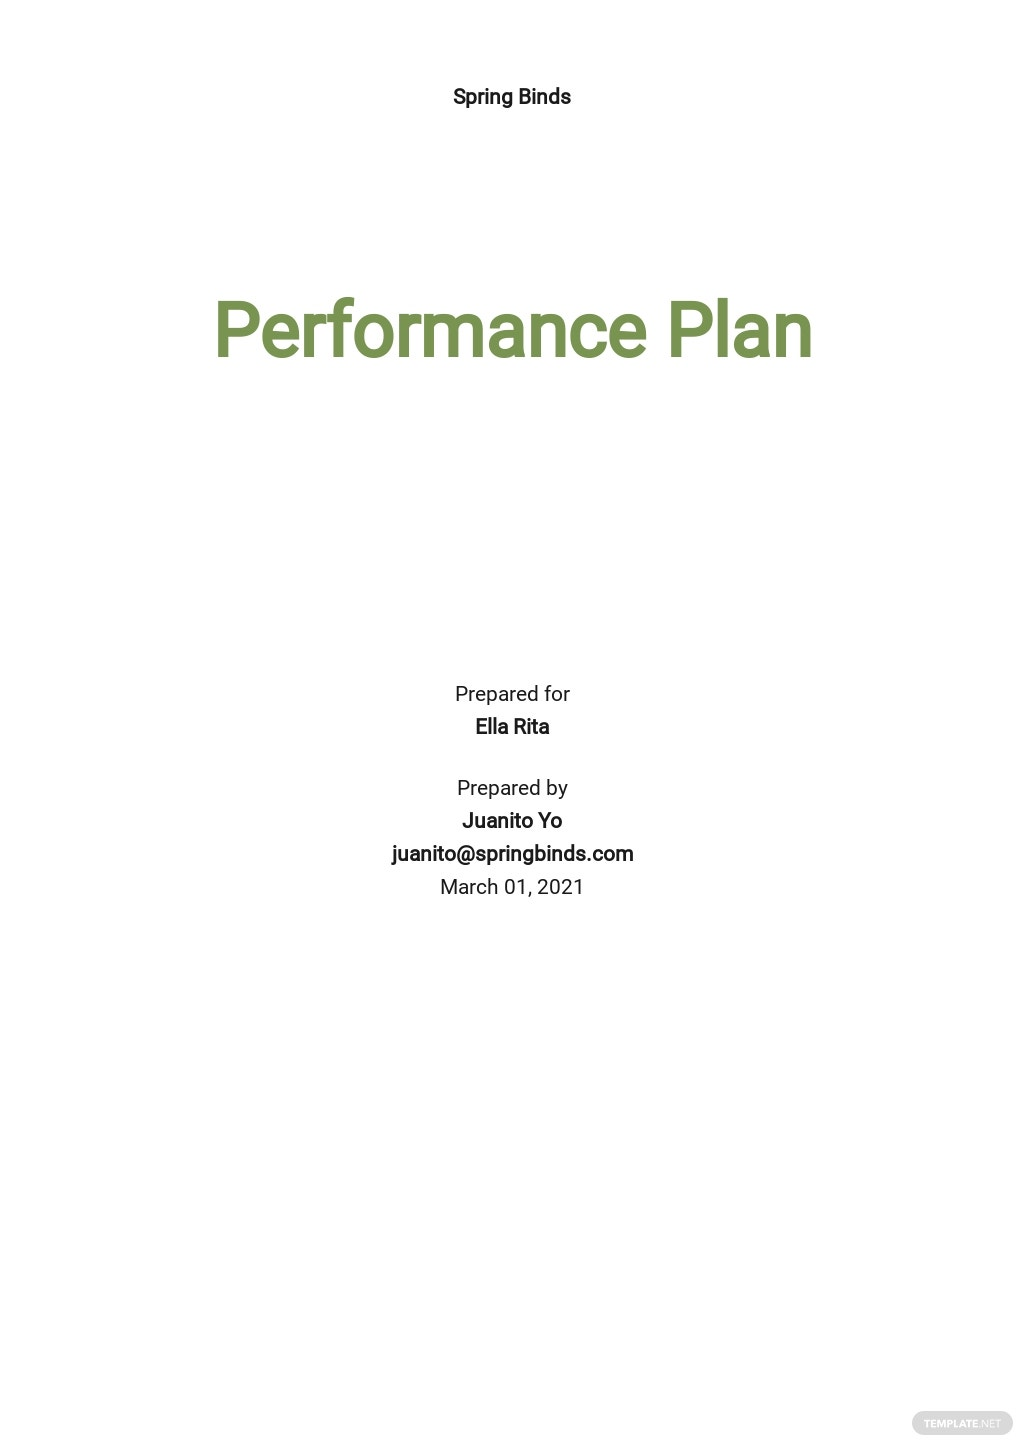 Performance Plan Template